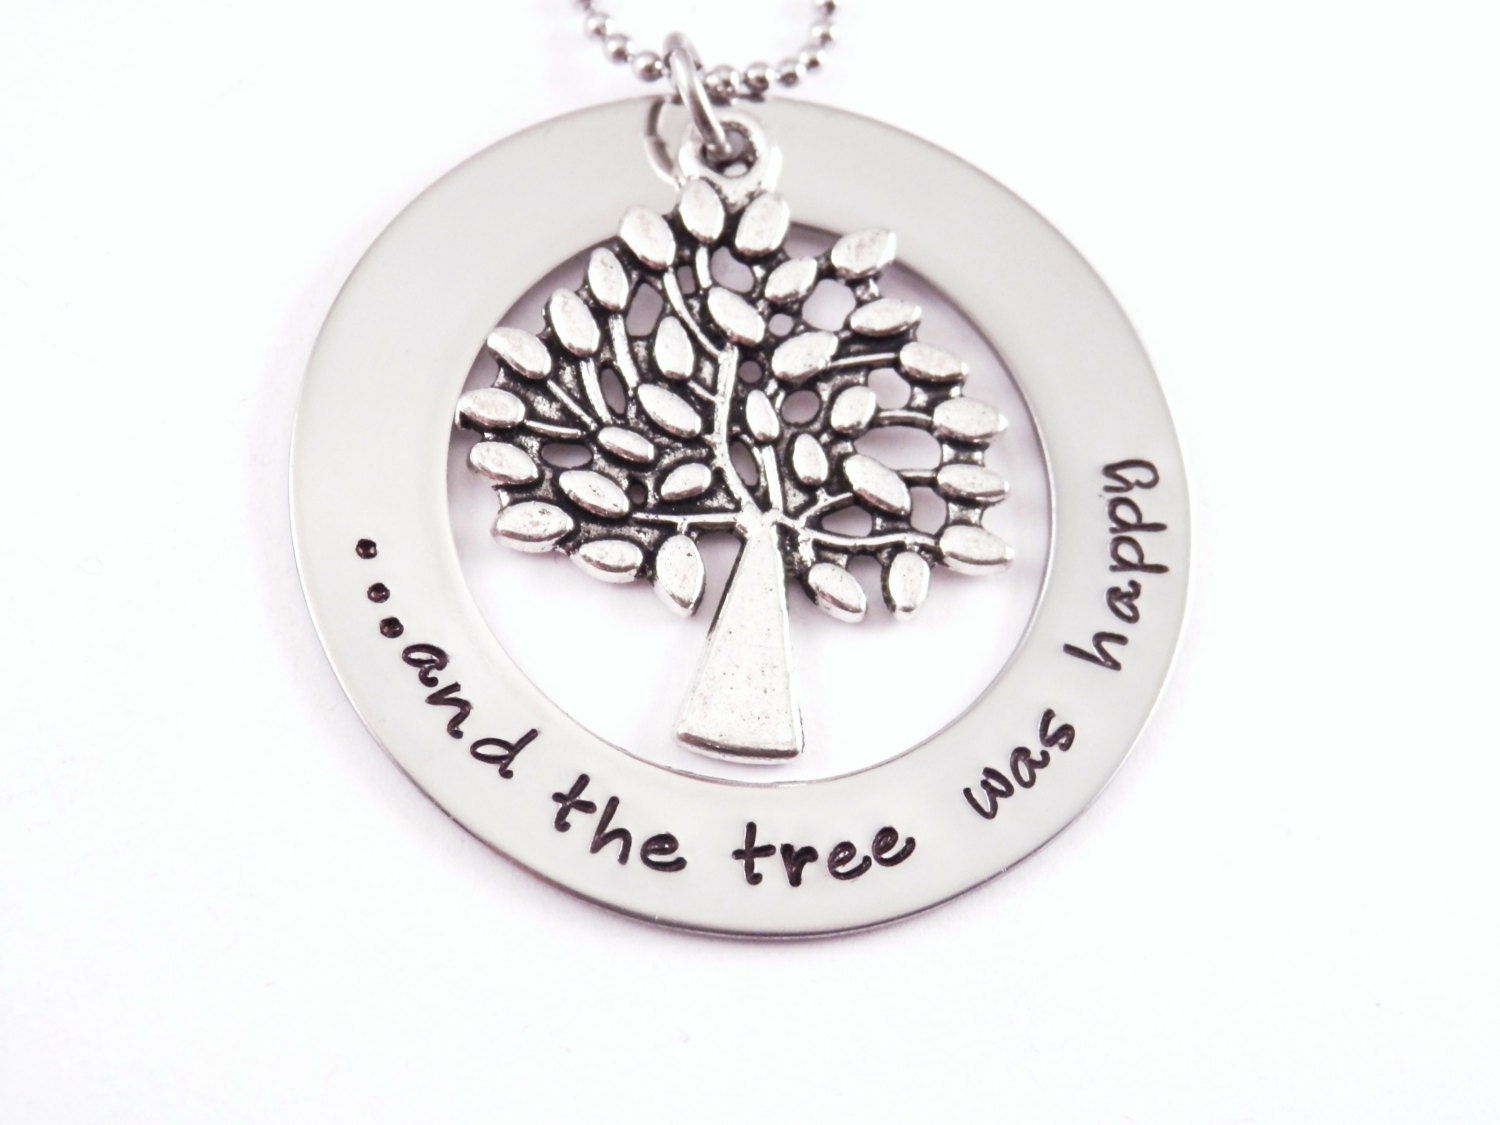 datingcafeinfohs.cf - The giving tree, a story by Shell Silverstein, text and video.